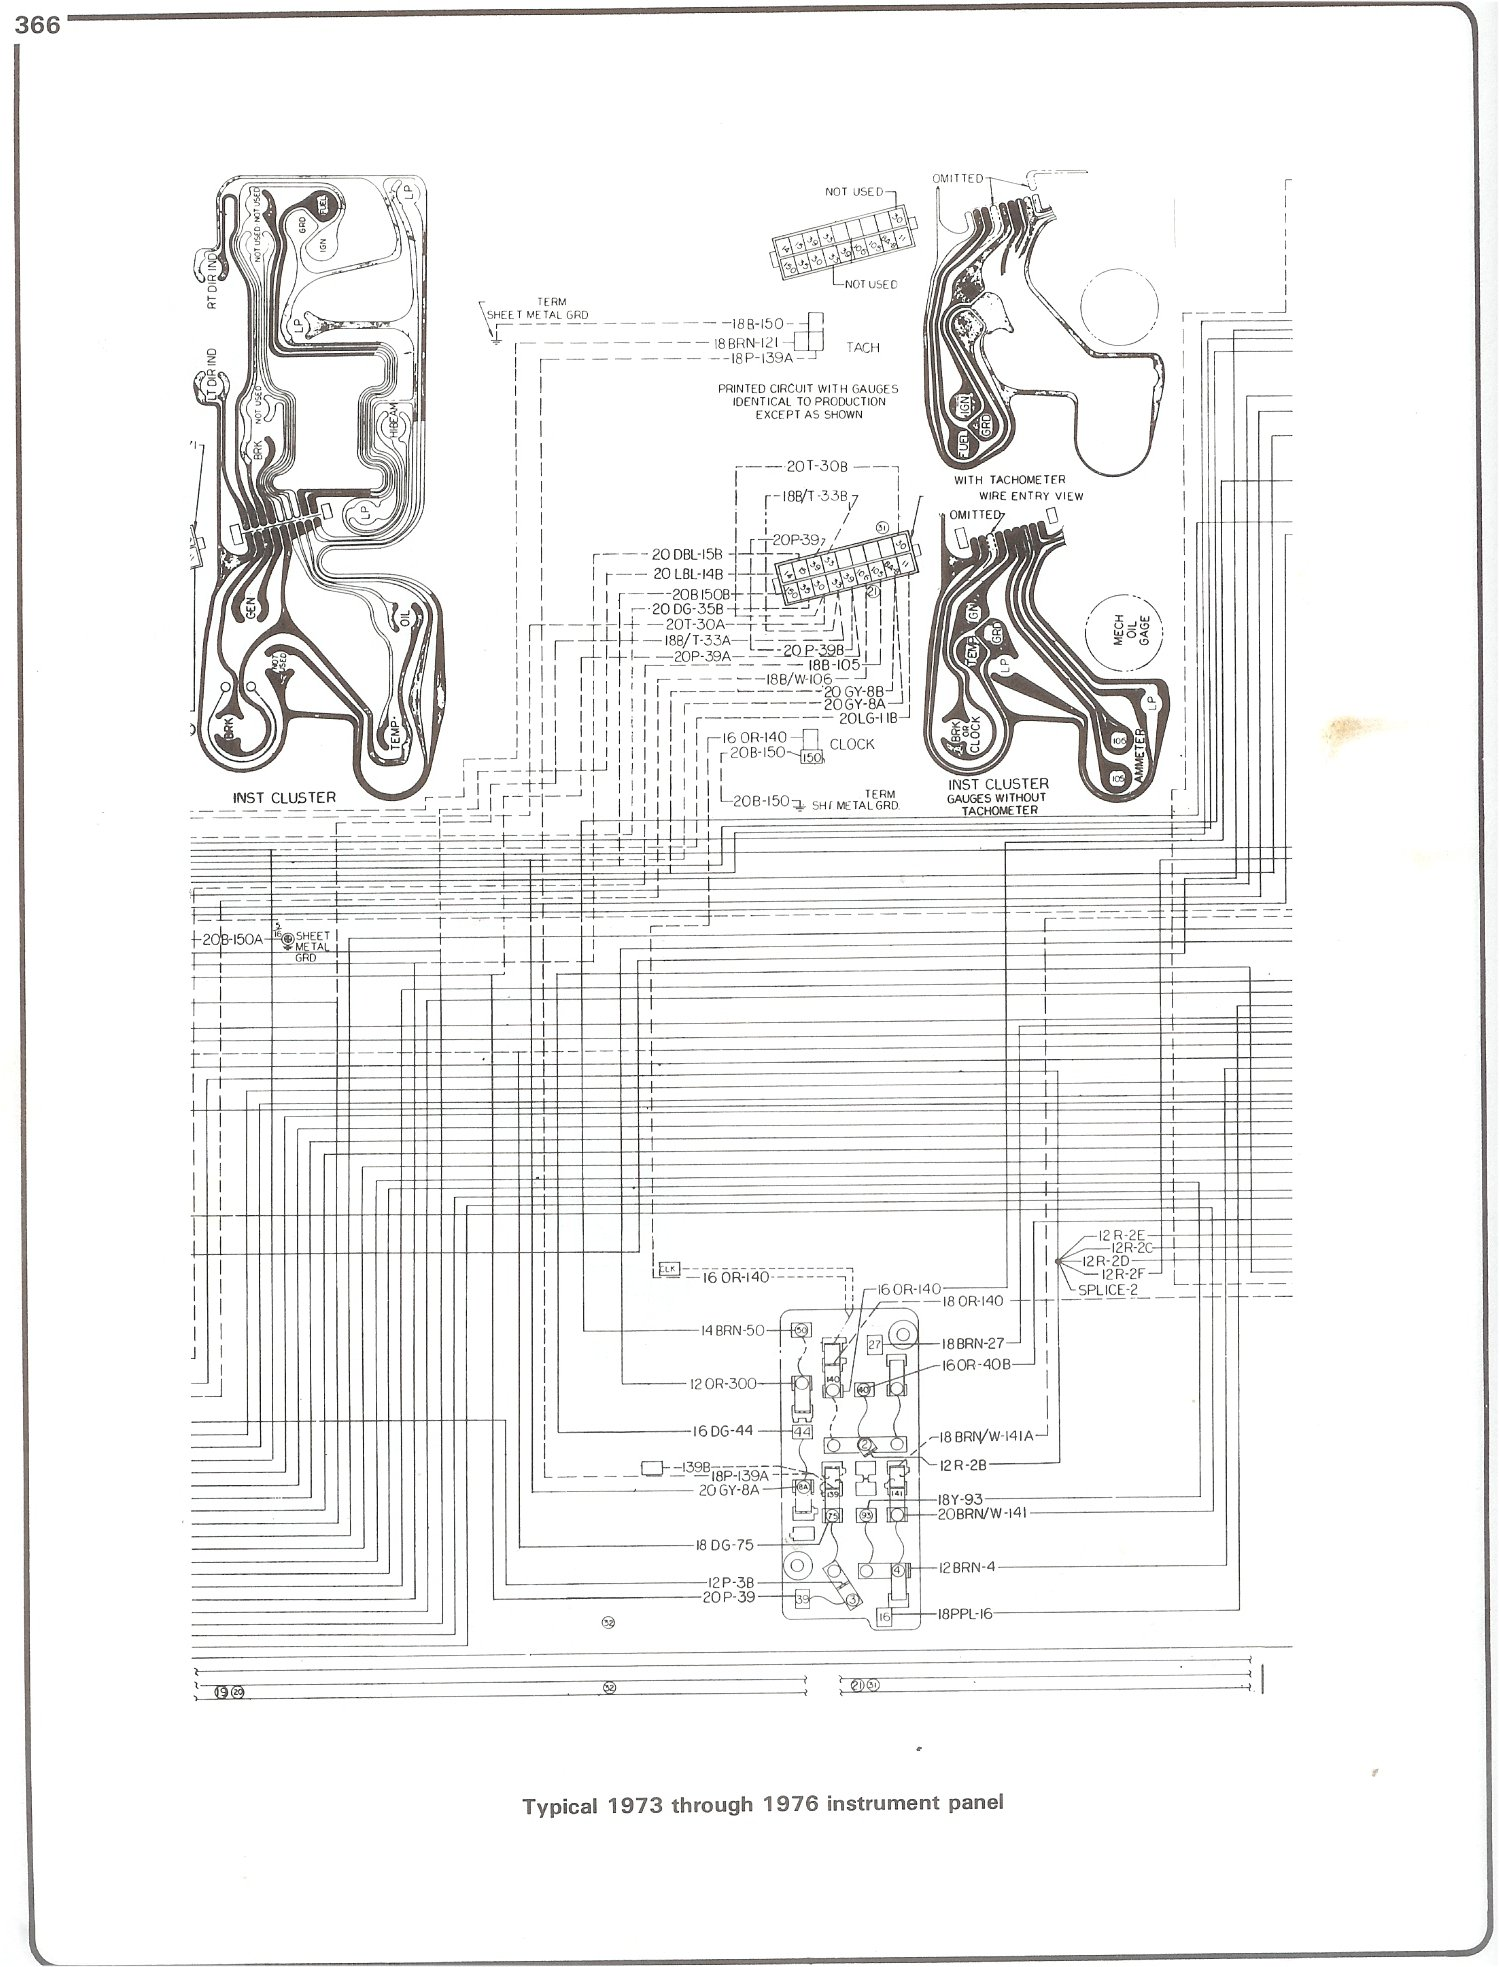 Complete 73-87 Wiring Diagrams on chevy pickup headlamp wiring, chevy k10 6 inch lift, chevy tail light diagram, 89 chevy truck light diagram,